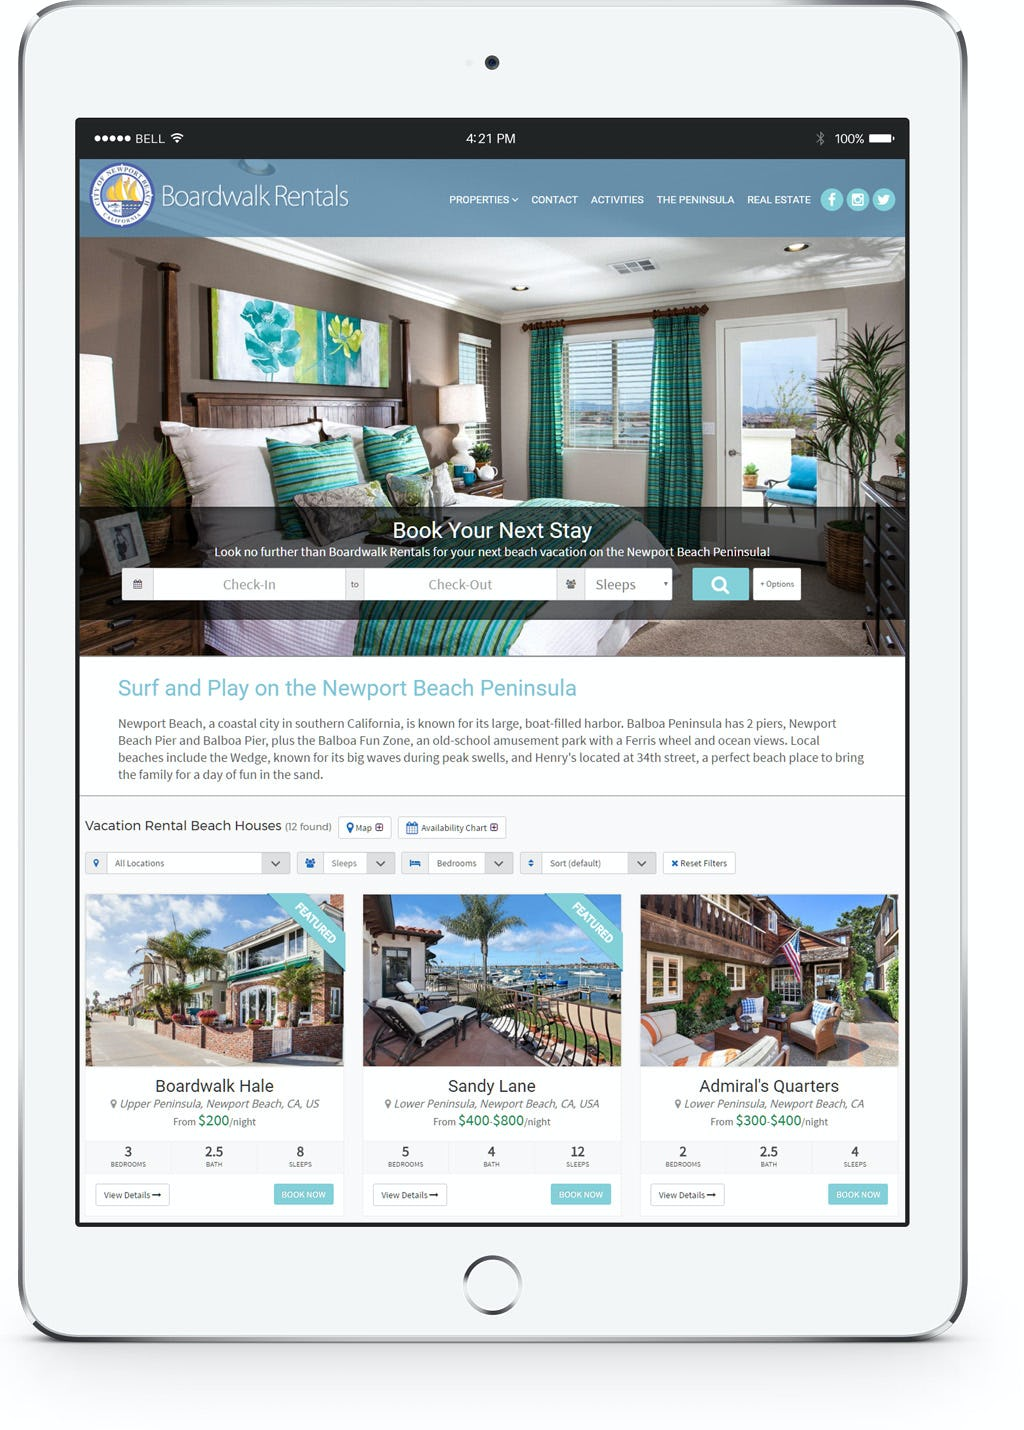 Vacation Rental Desk Software - Mobile access